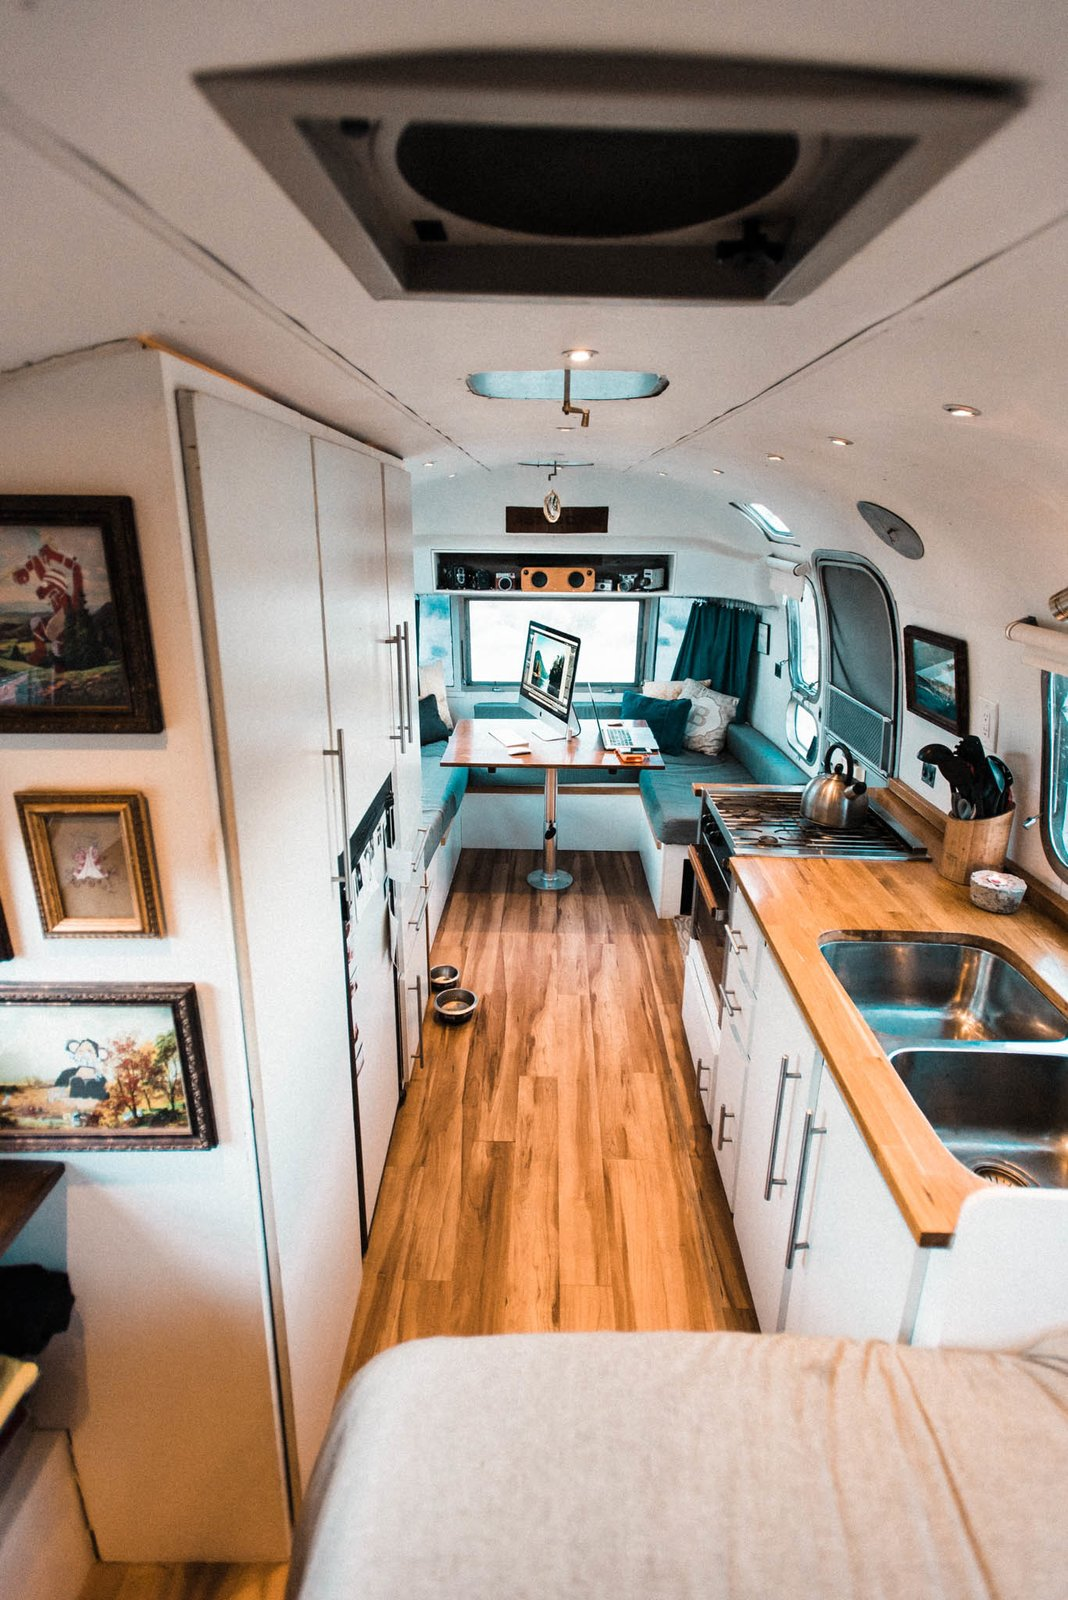 Kitchen, Wood, White, Medium Hardwood, Undermount, Recessed, and Ceiling  Best Kitchen Medium Hardwood Wood Ceiling Photos from A Photographer Couple's Airstream Renovation Lets Them Take Their Business on the Road